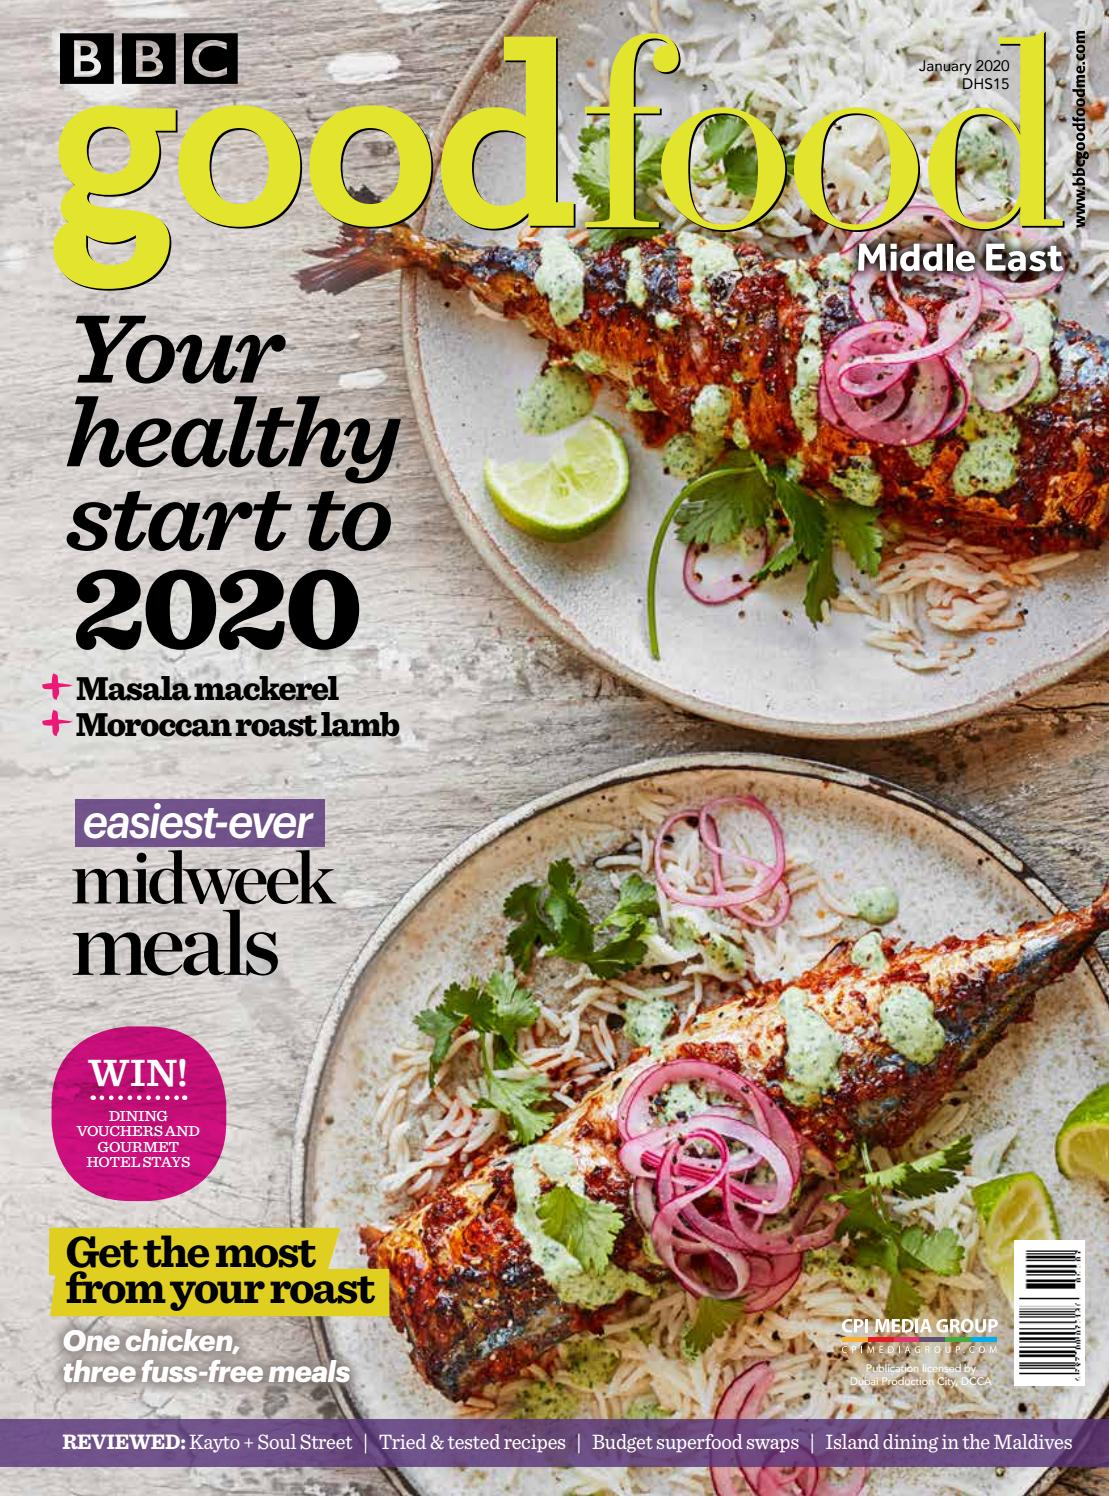 BBC Good Food ME - January 2020